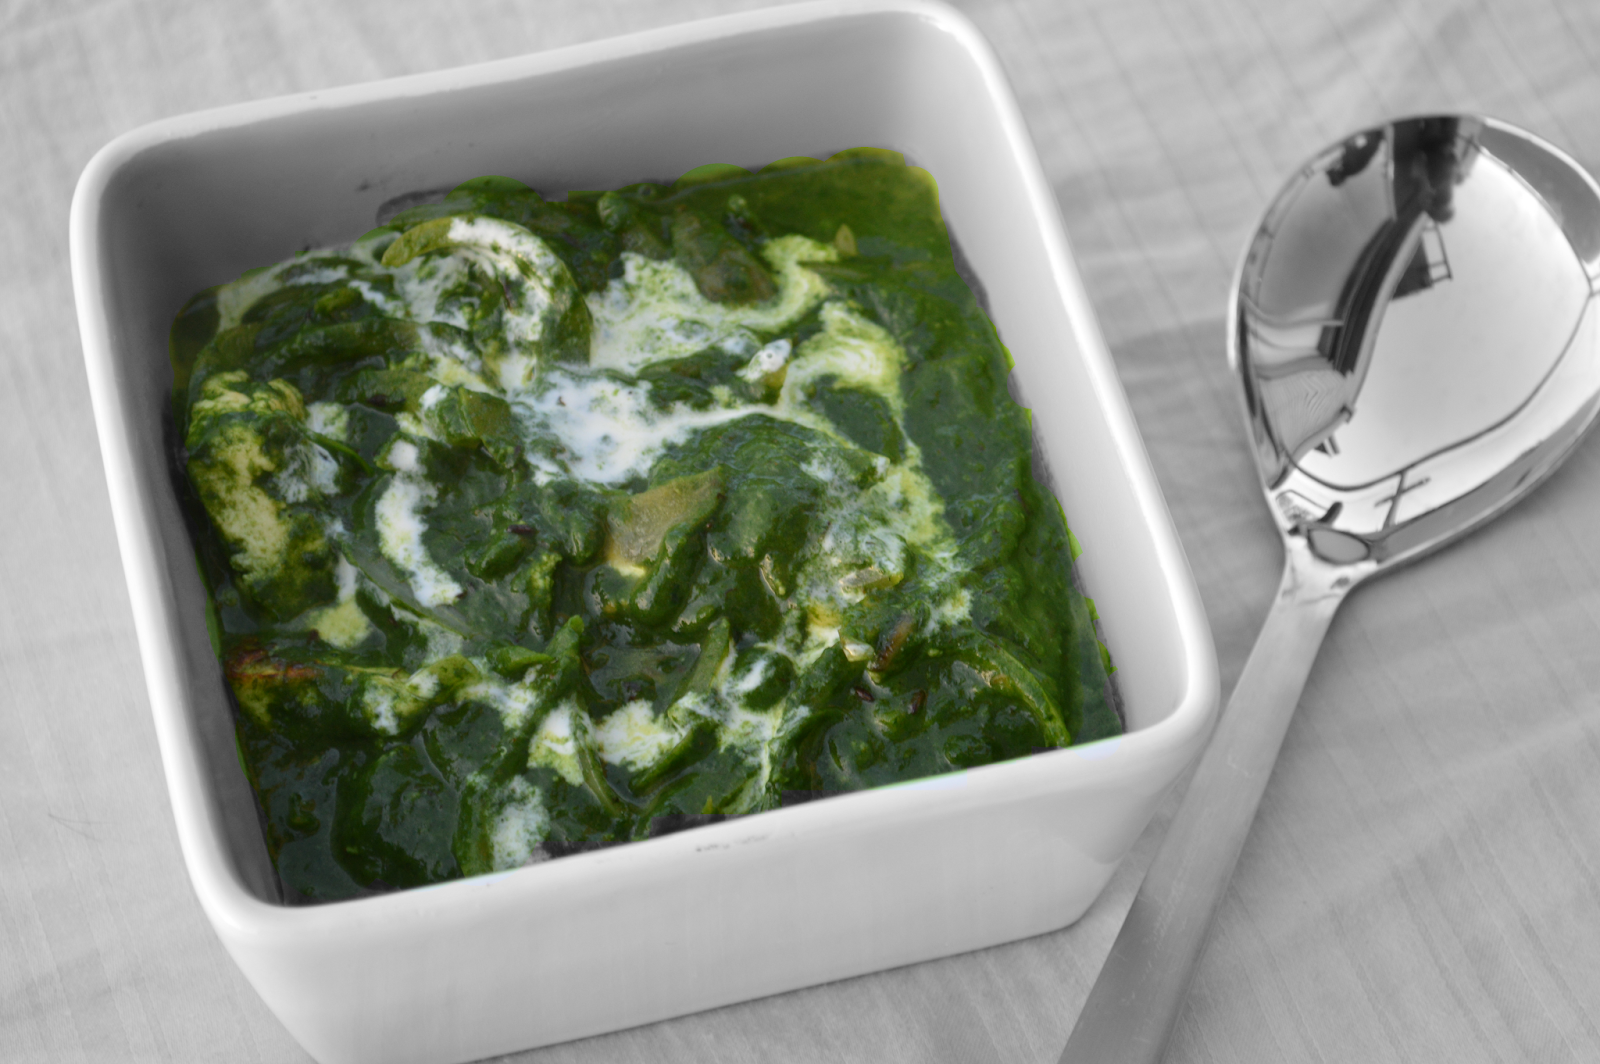 Palak Paneer/ Spinach and Cottage cheese